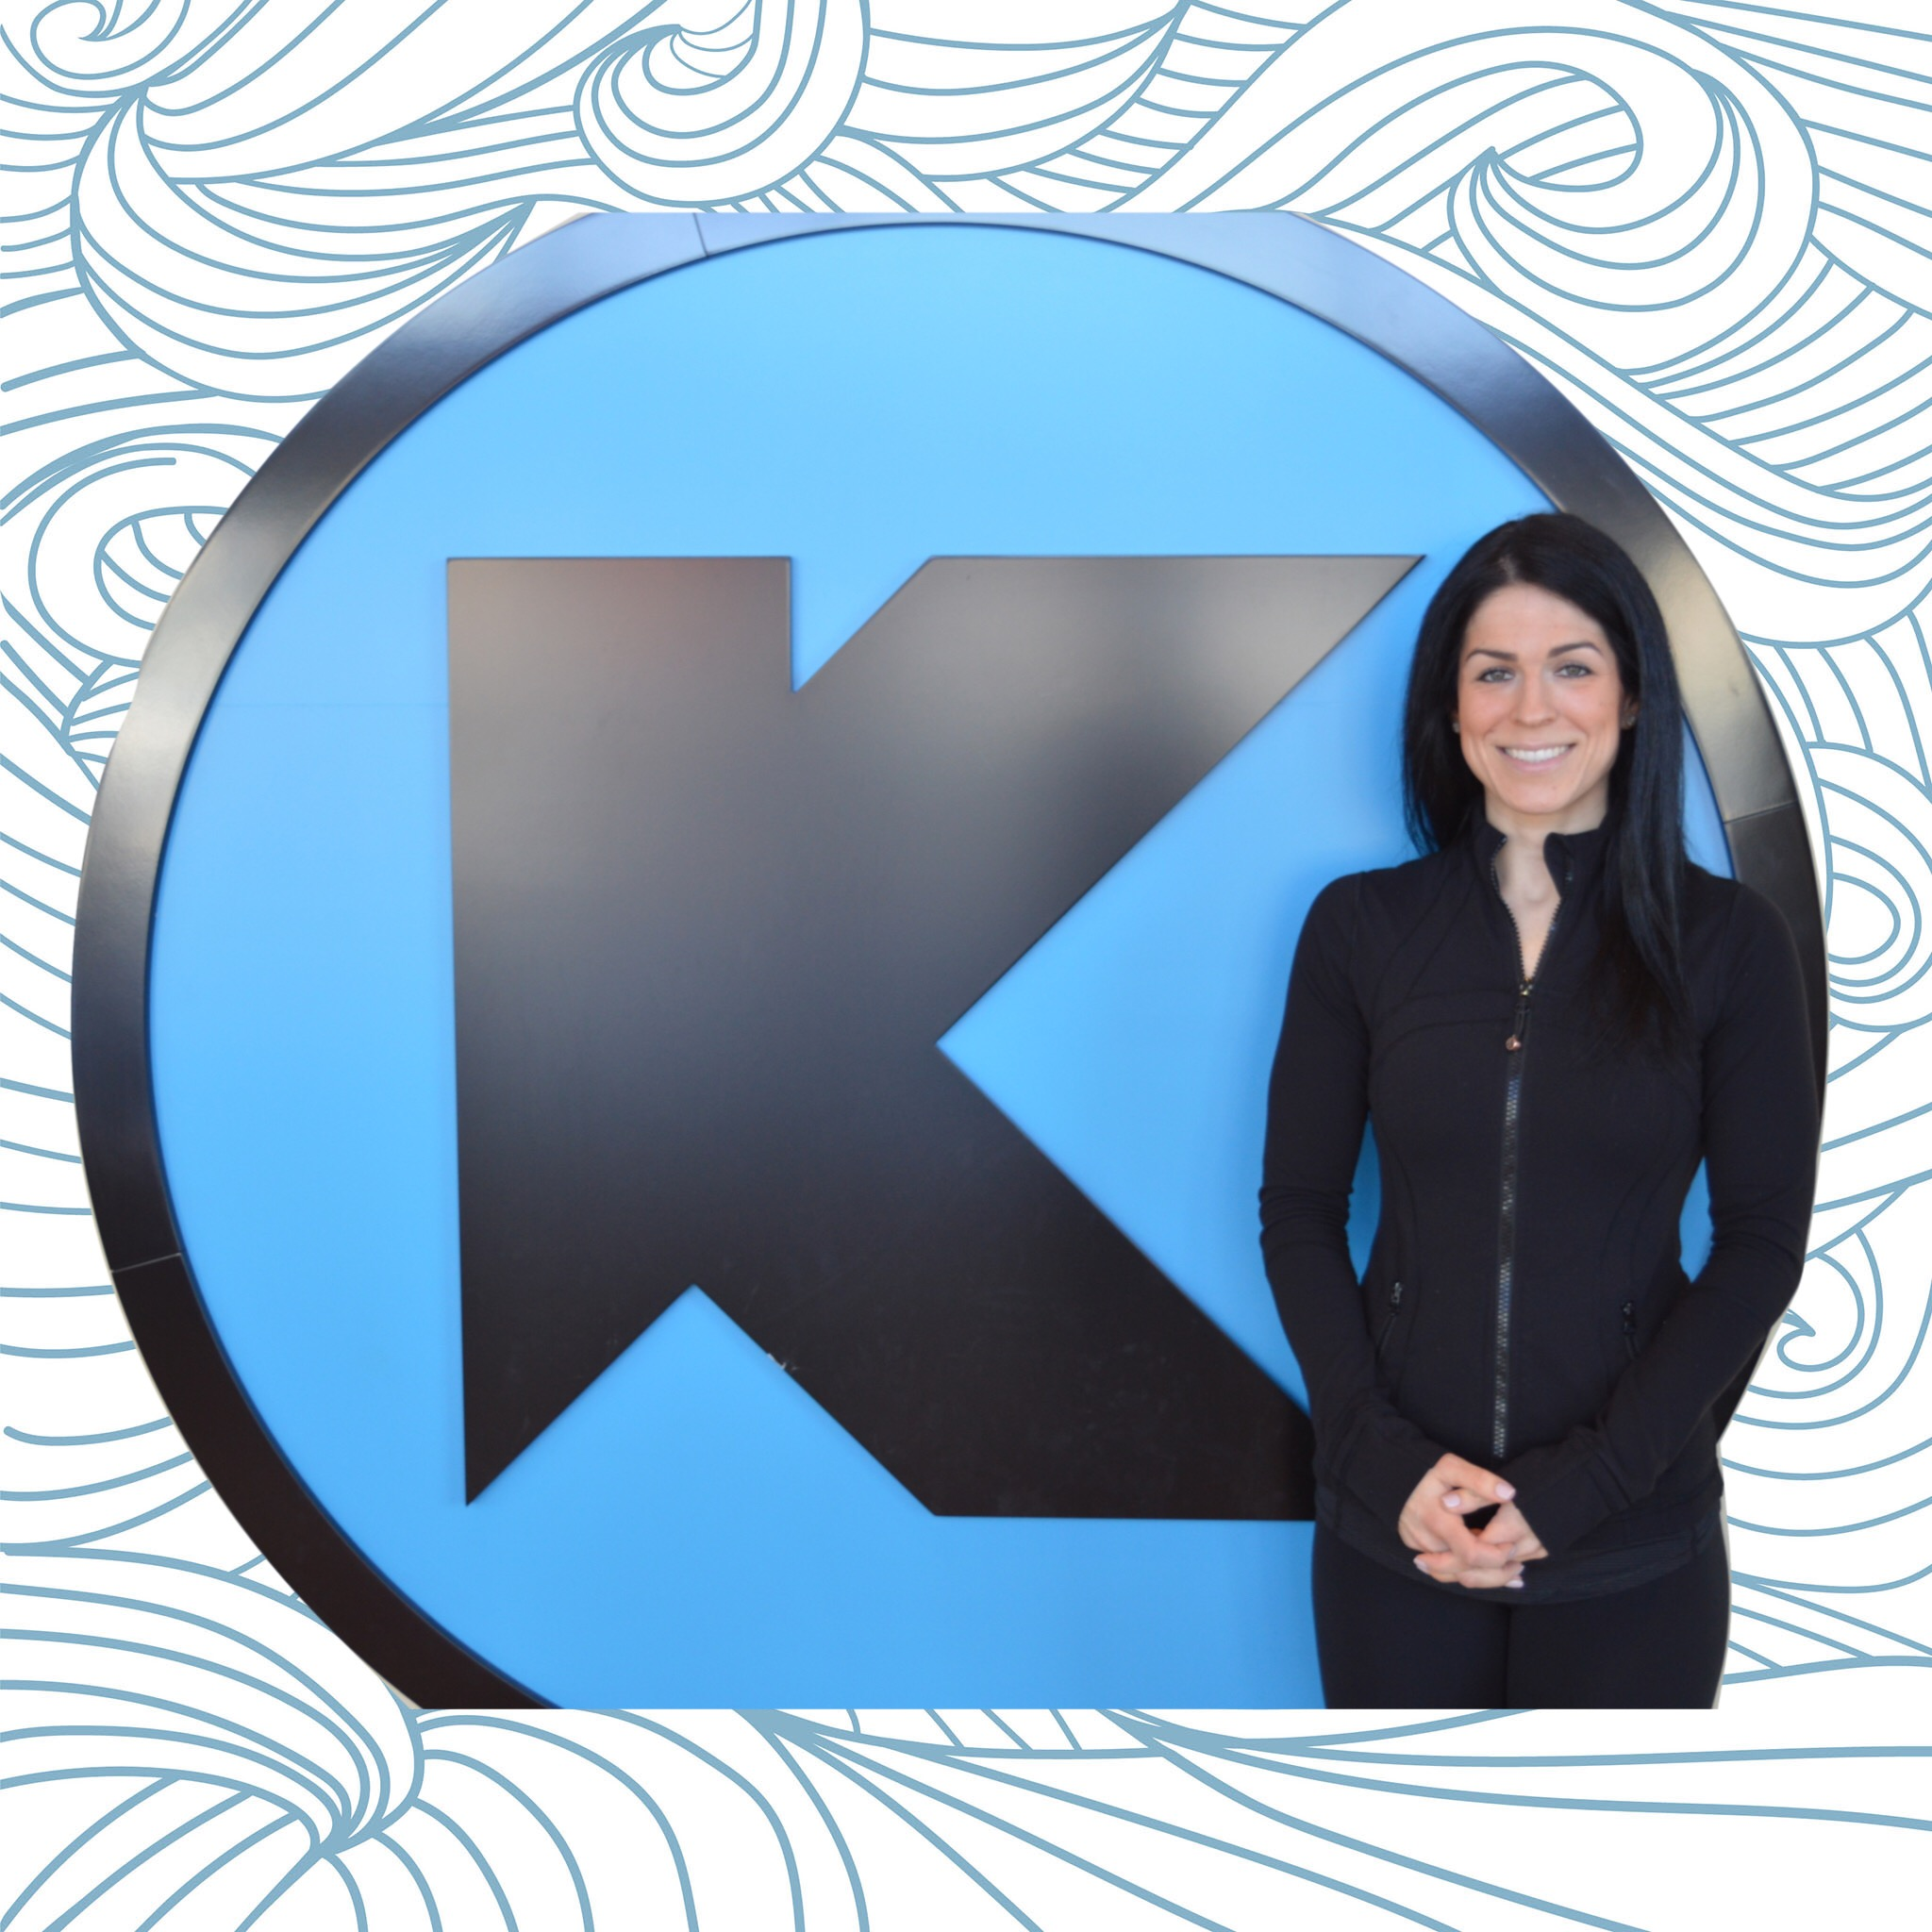 STEPHANIE - I'm the manager of the personal training department and have been working at Klub 20 since we opened in 2011.I am a certified athletic therapist, Naturopath, TPI Golf Fitness Instructor and certified FMS levels 1 and 2. I specialize in rehabilitation exercises for acute or chronic injuries and in postural strength and conditioning. I also have experience in weight loss and creating overall healthier lifestyle habits. My trainings focus on functional movement patterns and proper exercise technique.It is my mission to make sure my clients enjoy working out and feel great every time they come to the gym!